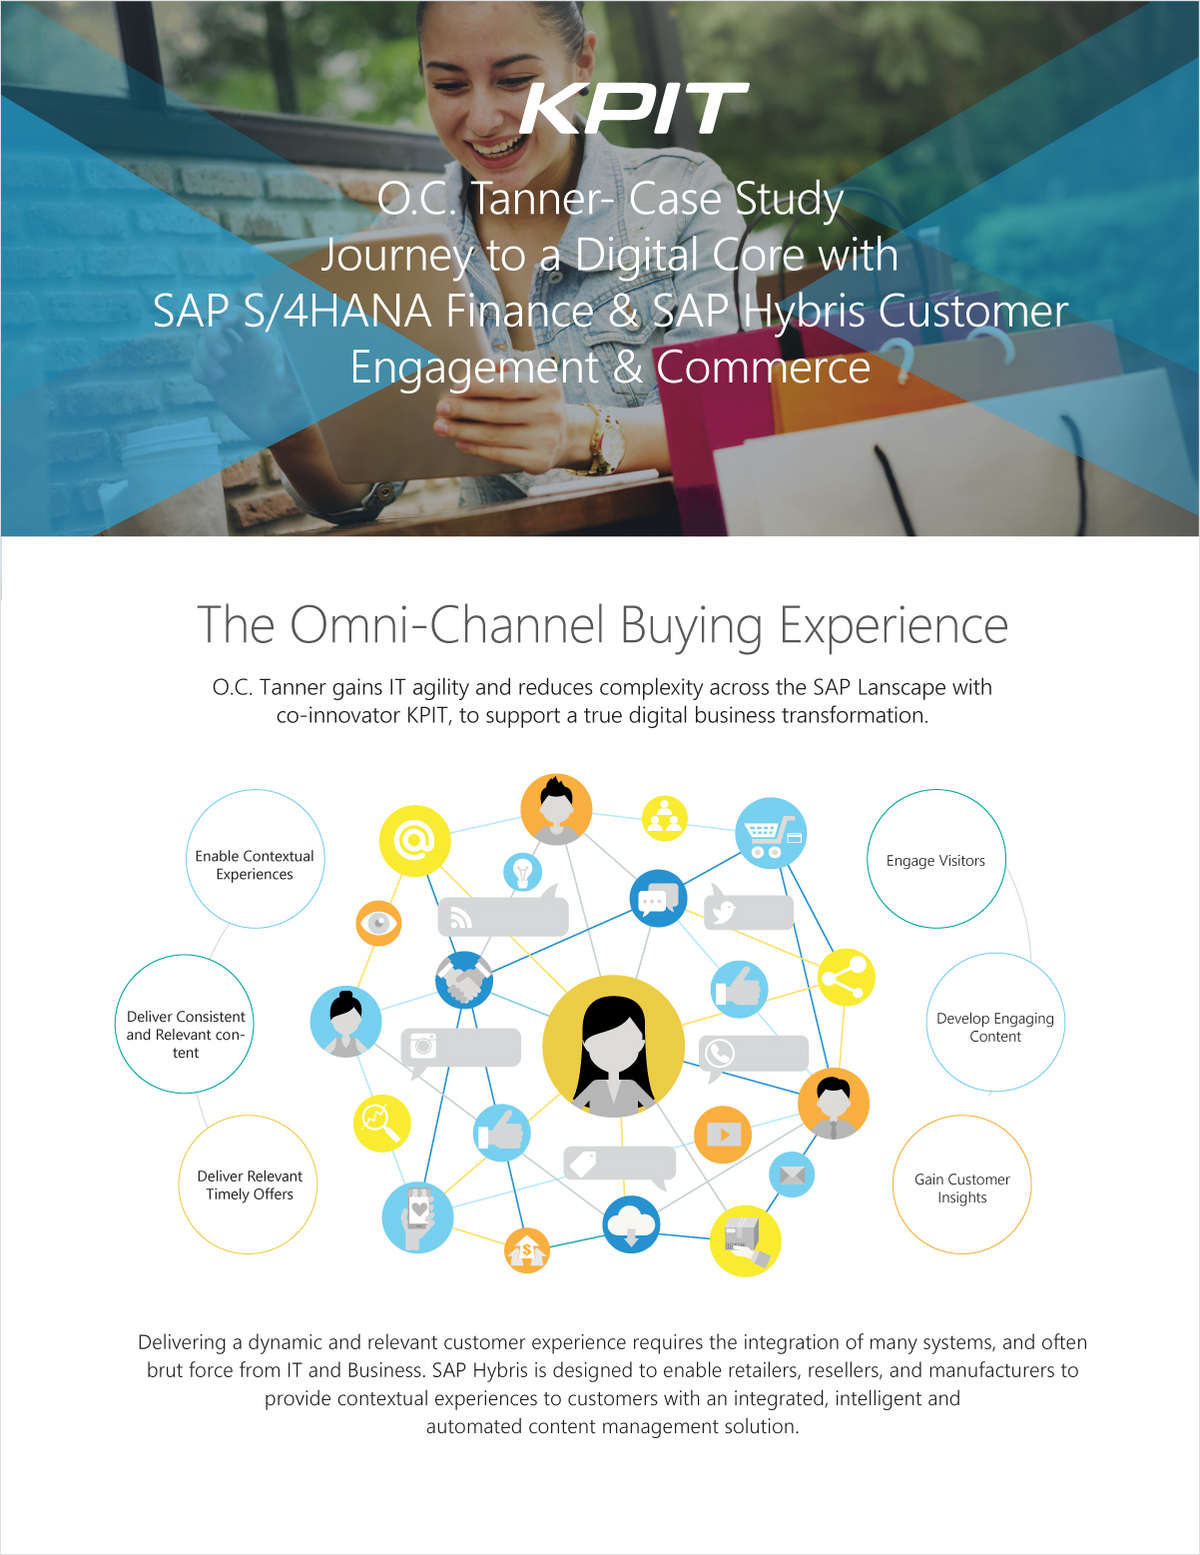 O.C. Tanner Case Study- Journey to a Digital Business Network